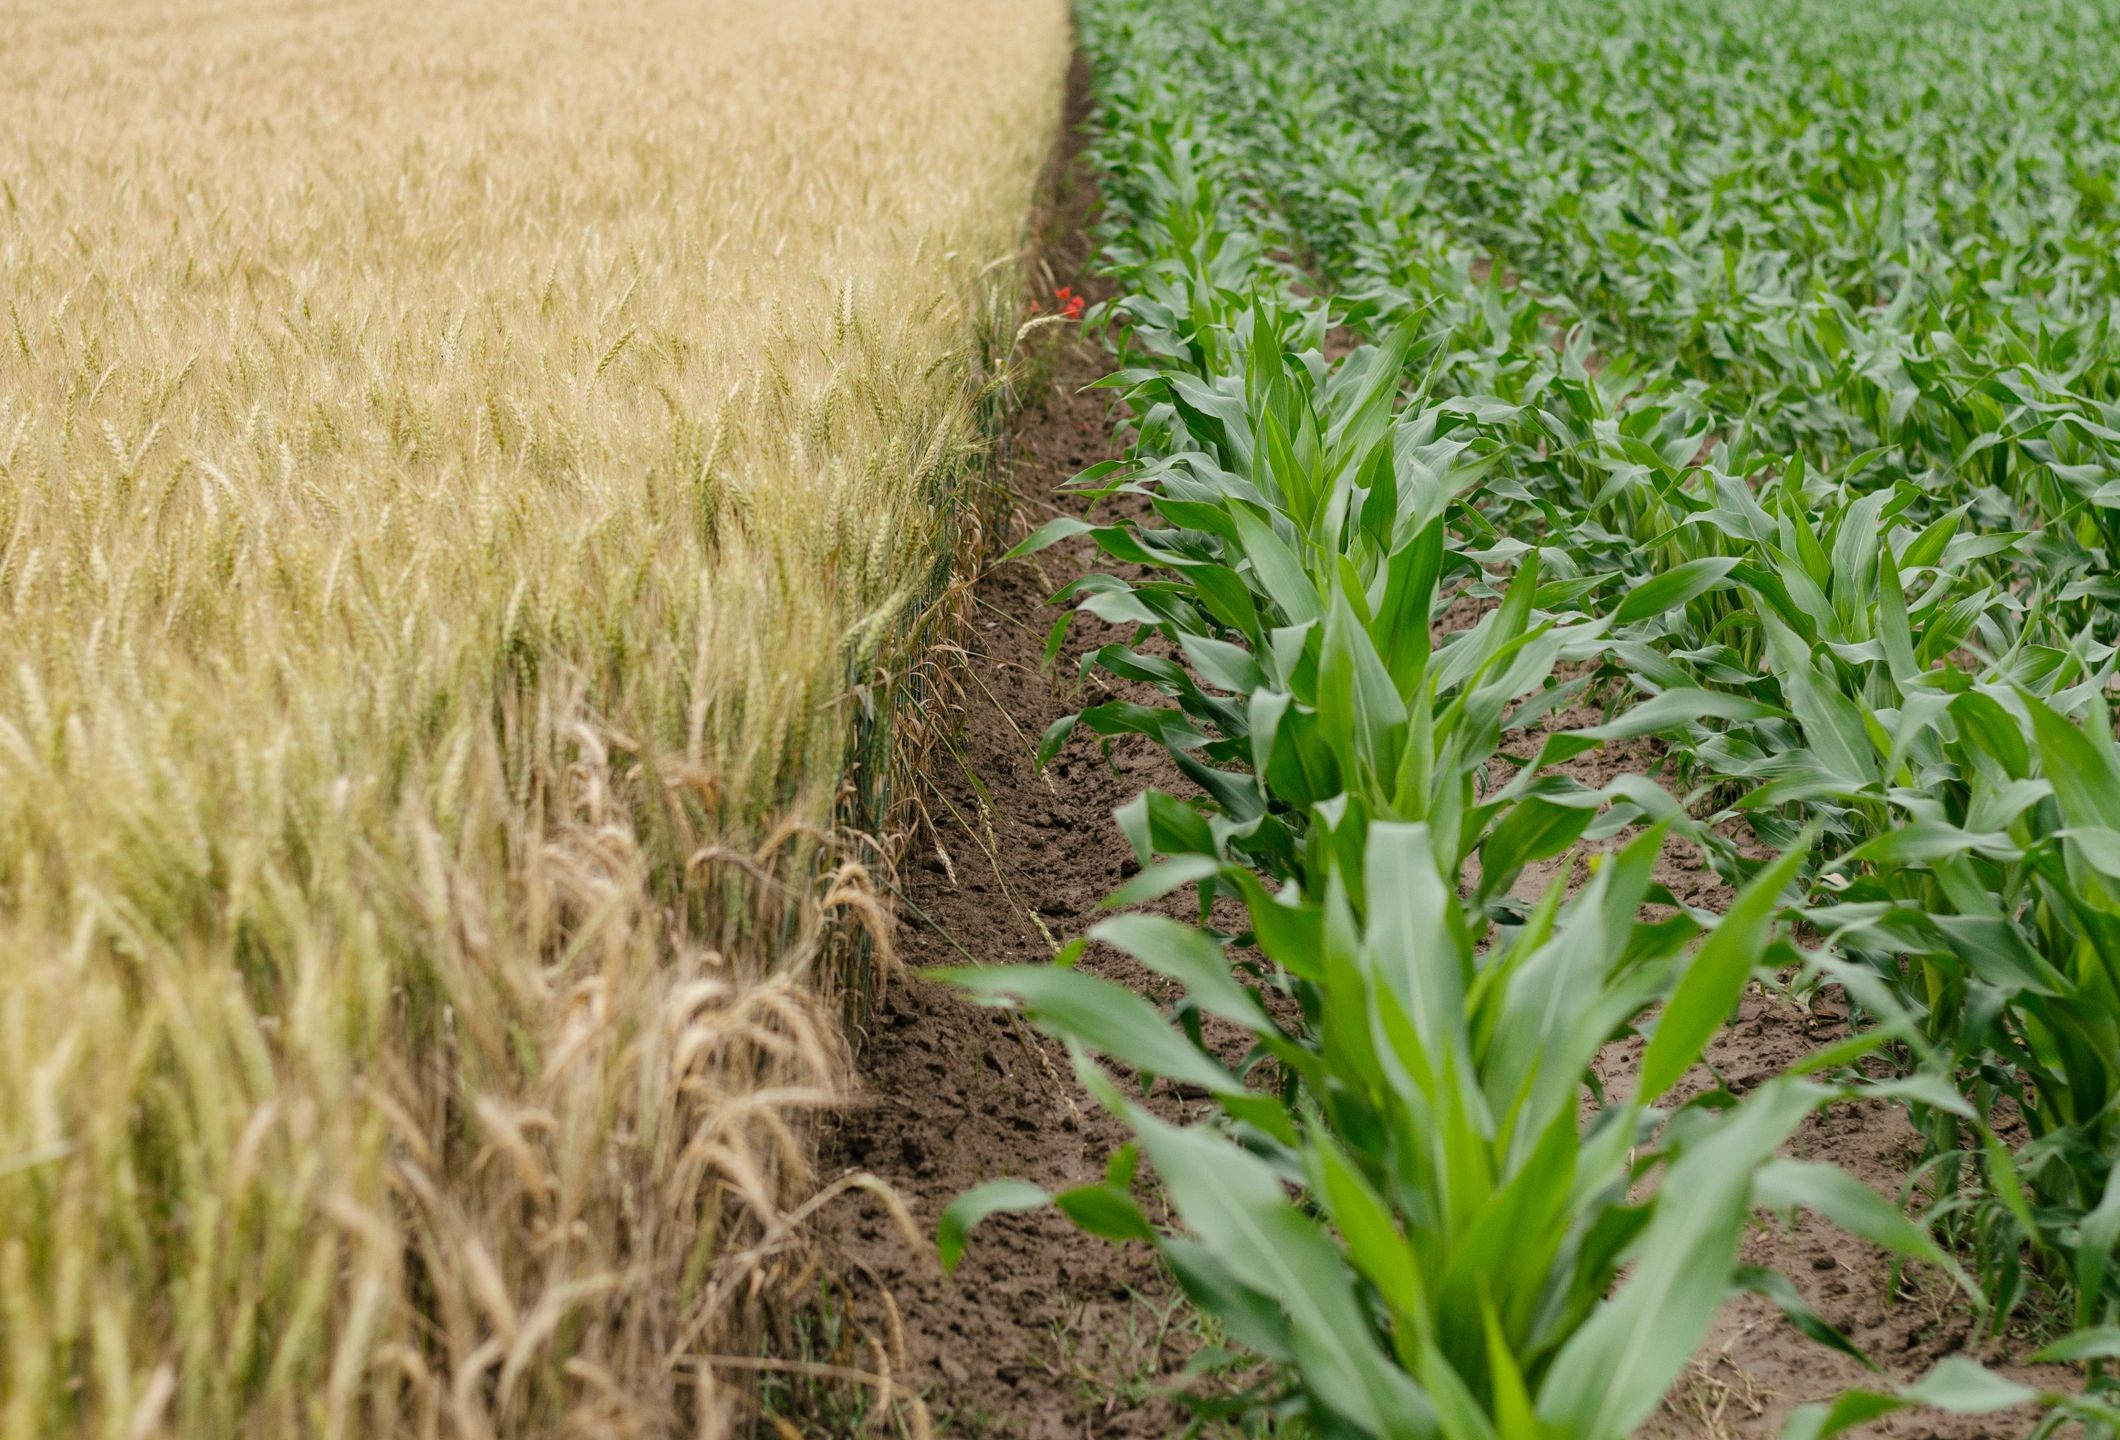 tamper evident protection for Agriculture